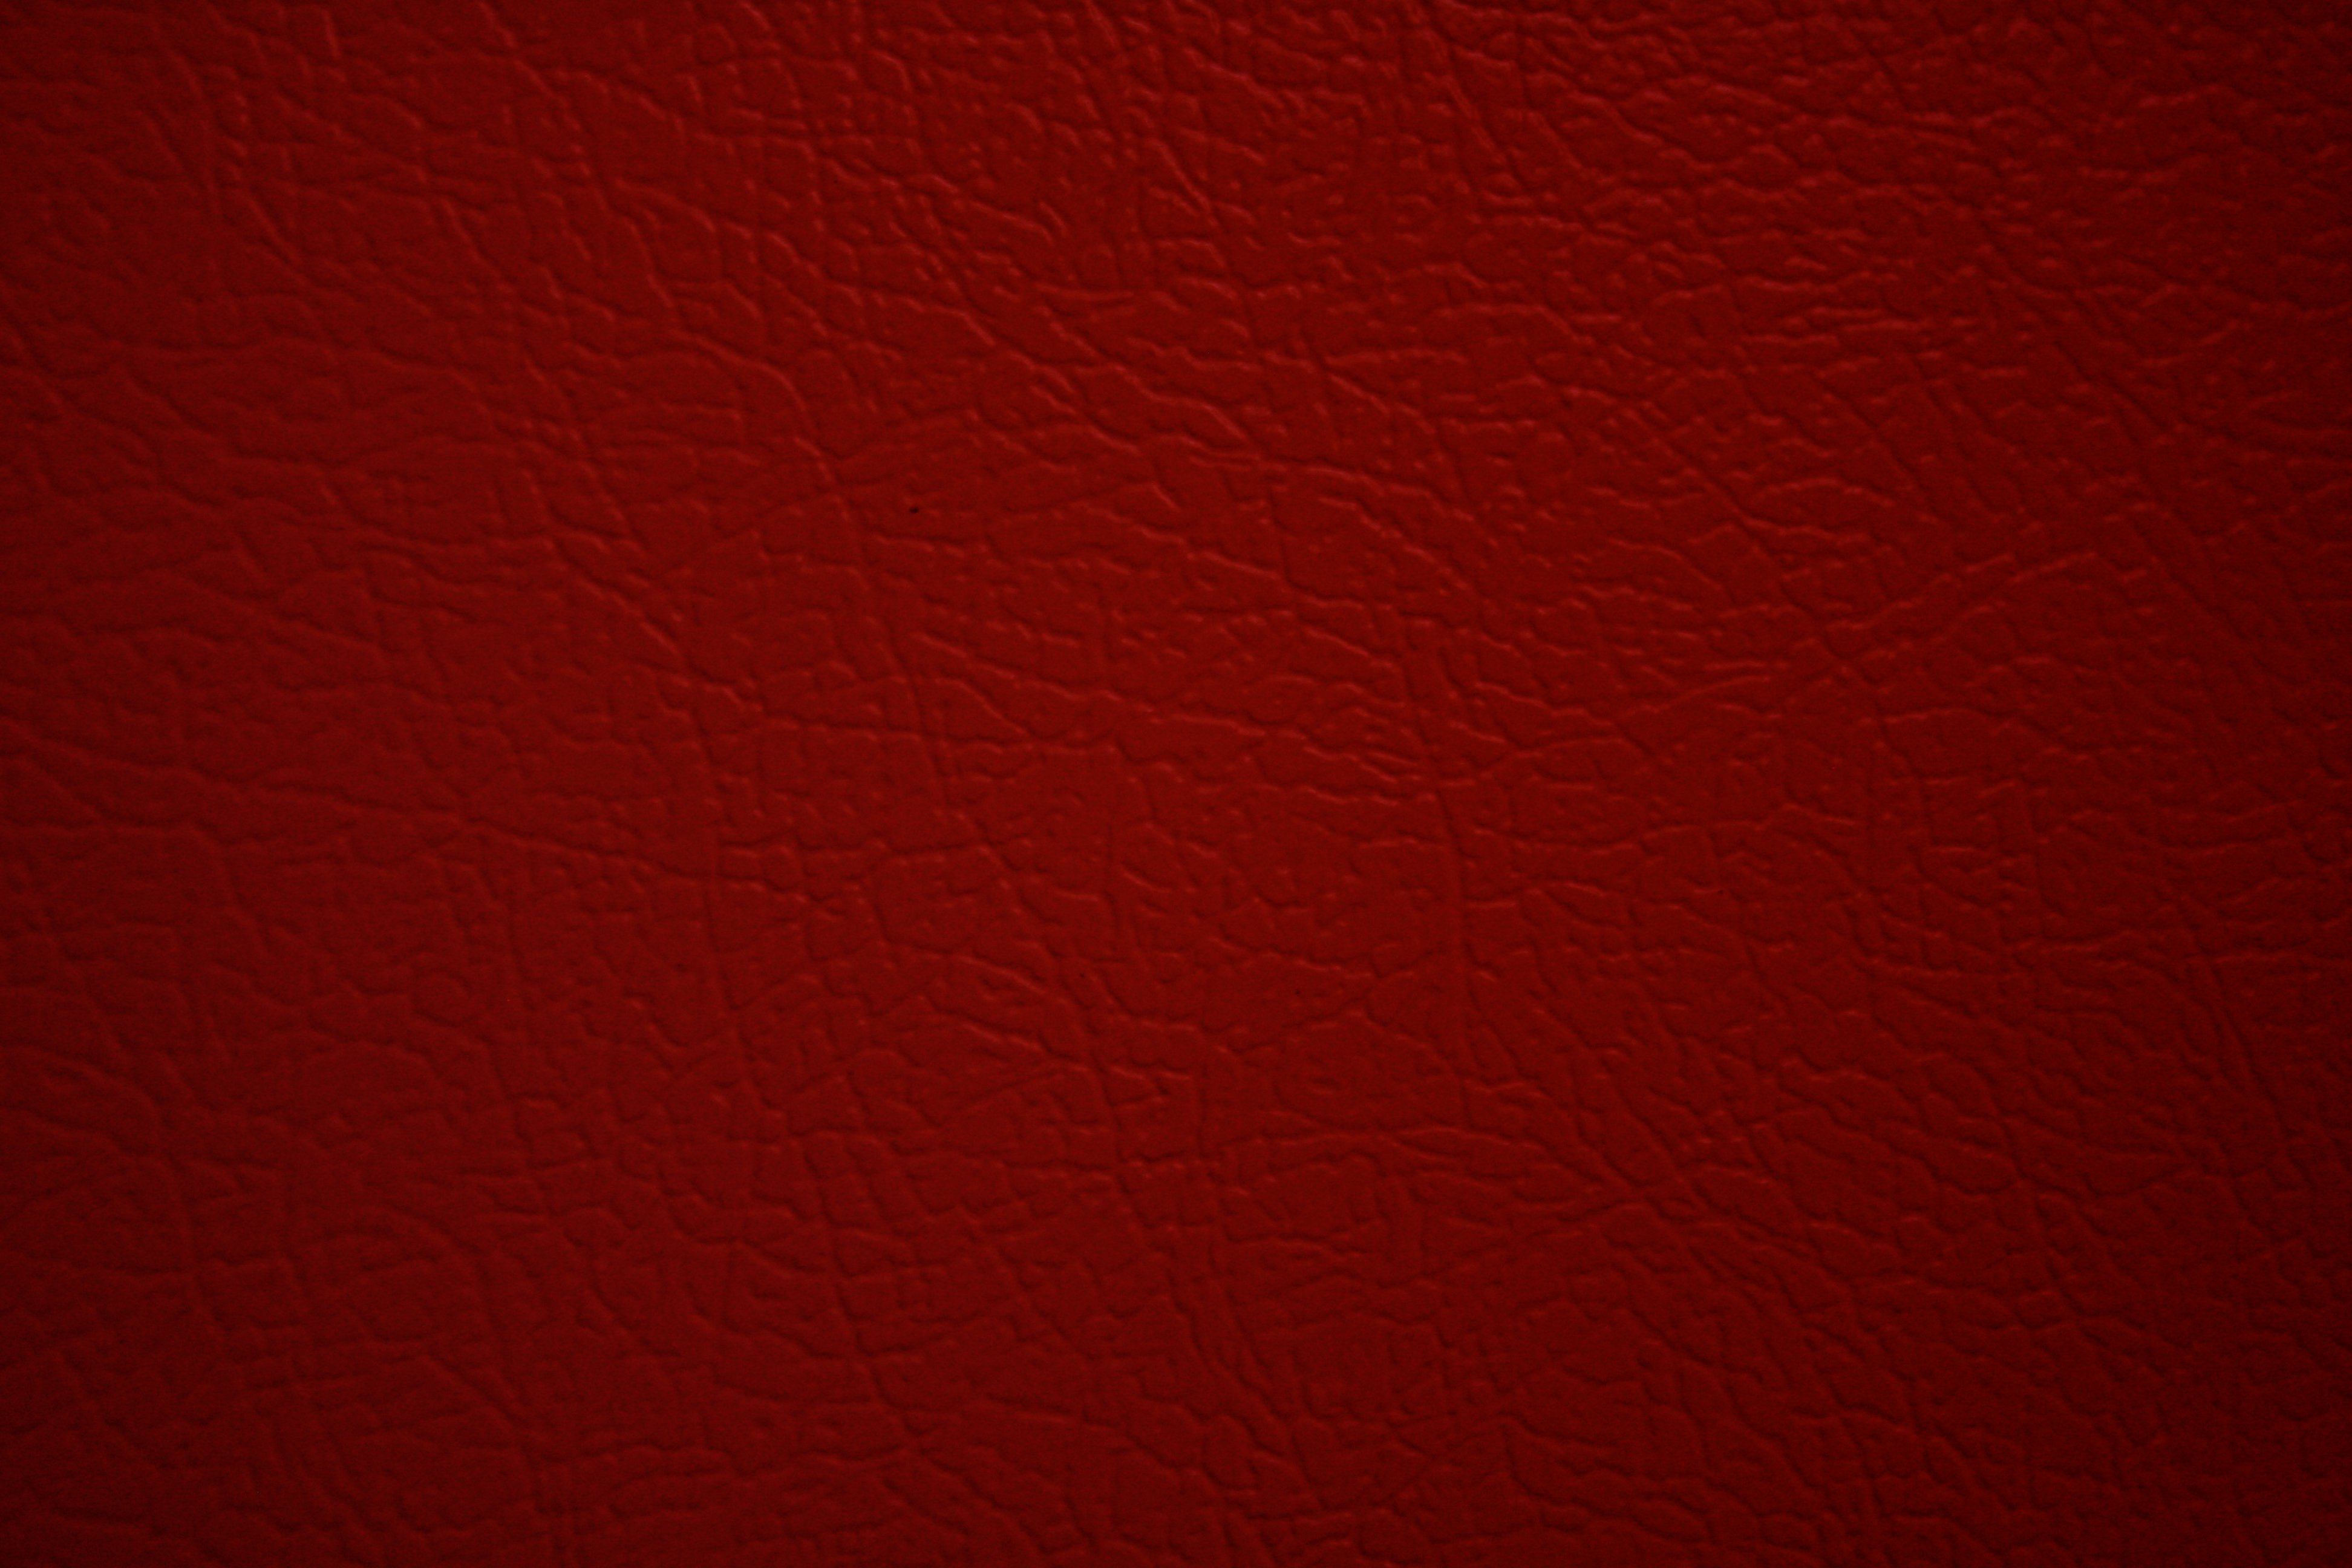 Red Faux Leather Texture Picture Free Photograph